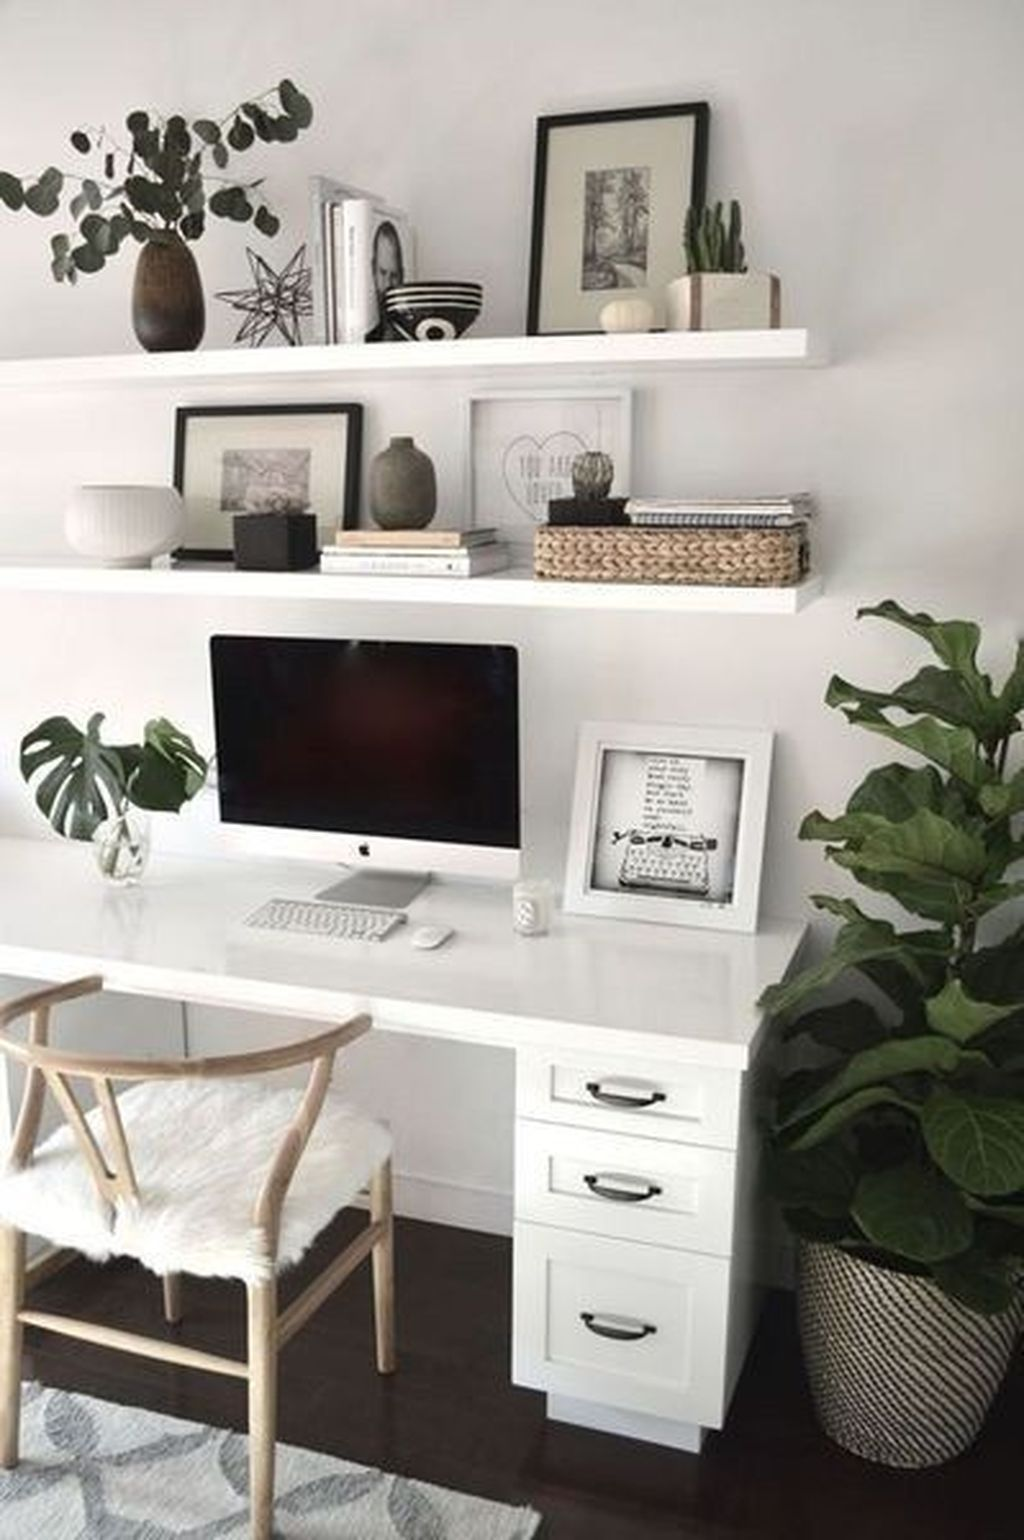 30 Admirable Modern Home Office Design Ideas That You Like Pimphomee Home Office Decor Home Office Design Modern Home Office